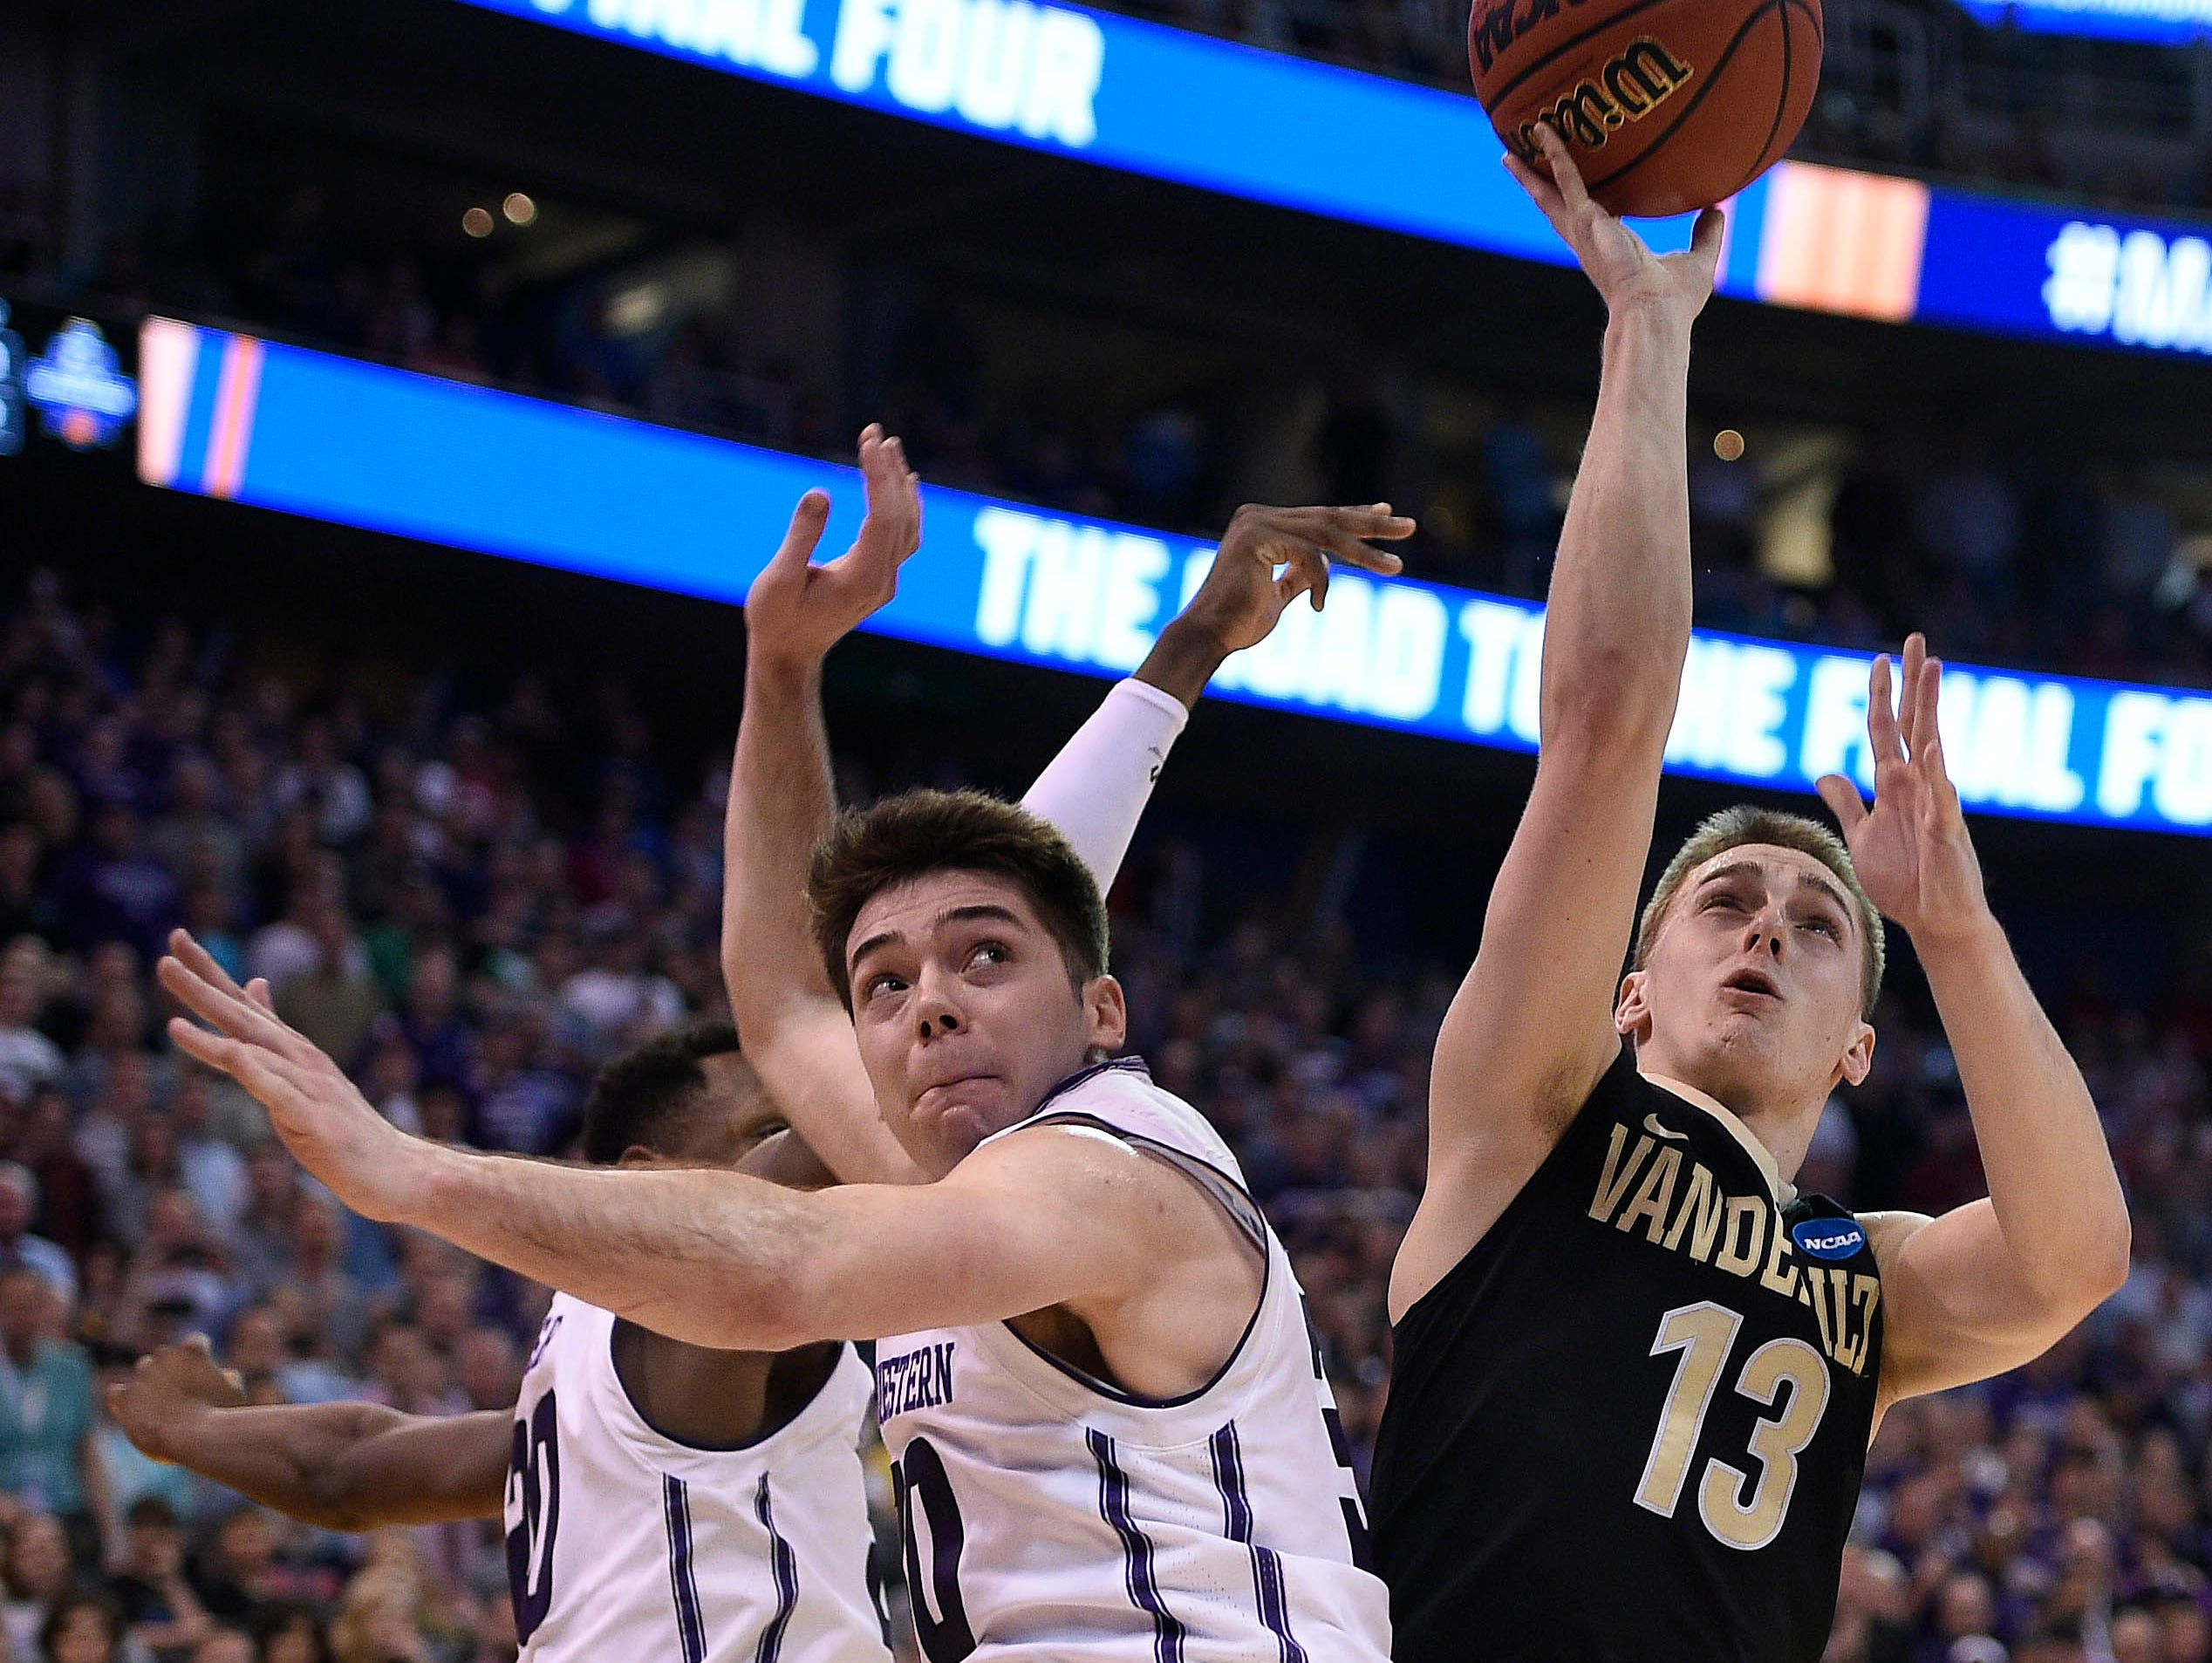 Vanderbilt guard Riley LaChance (13) shoots against Northwestern guard Bryant McIntosh (30) during the second half of the NCAA tournament first-round game in Salt Lake City on March 16, 2017.